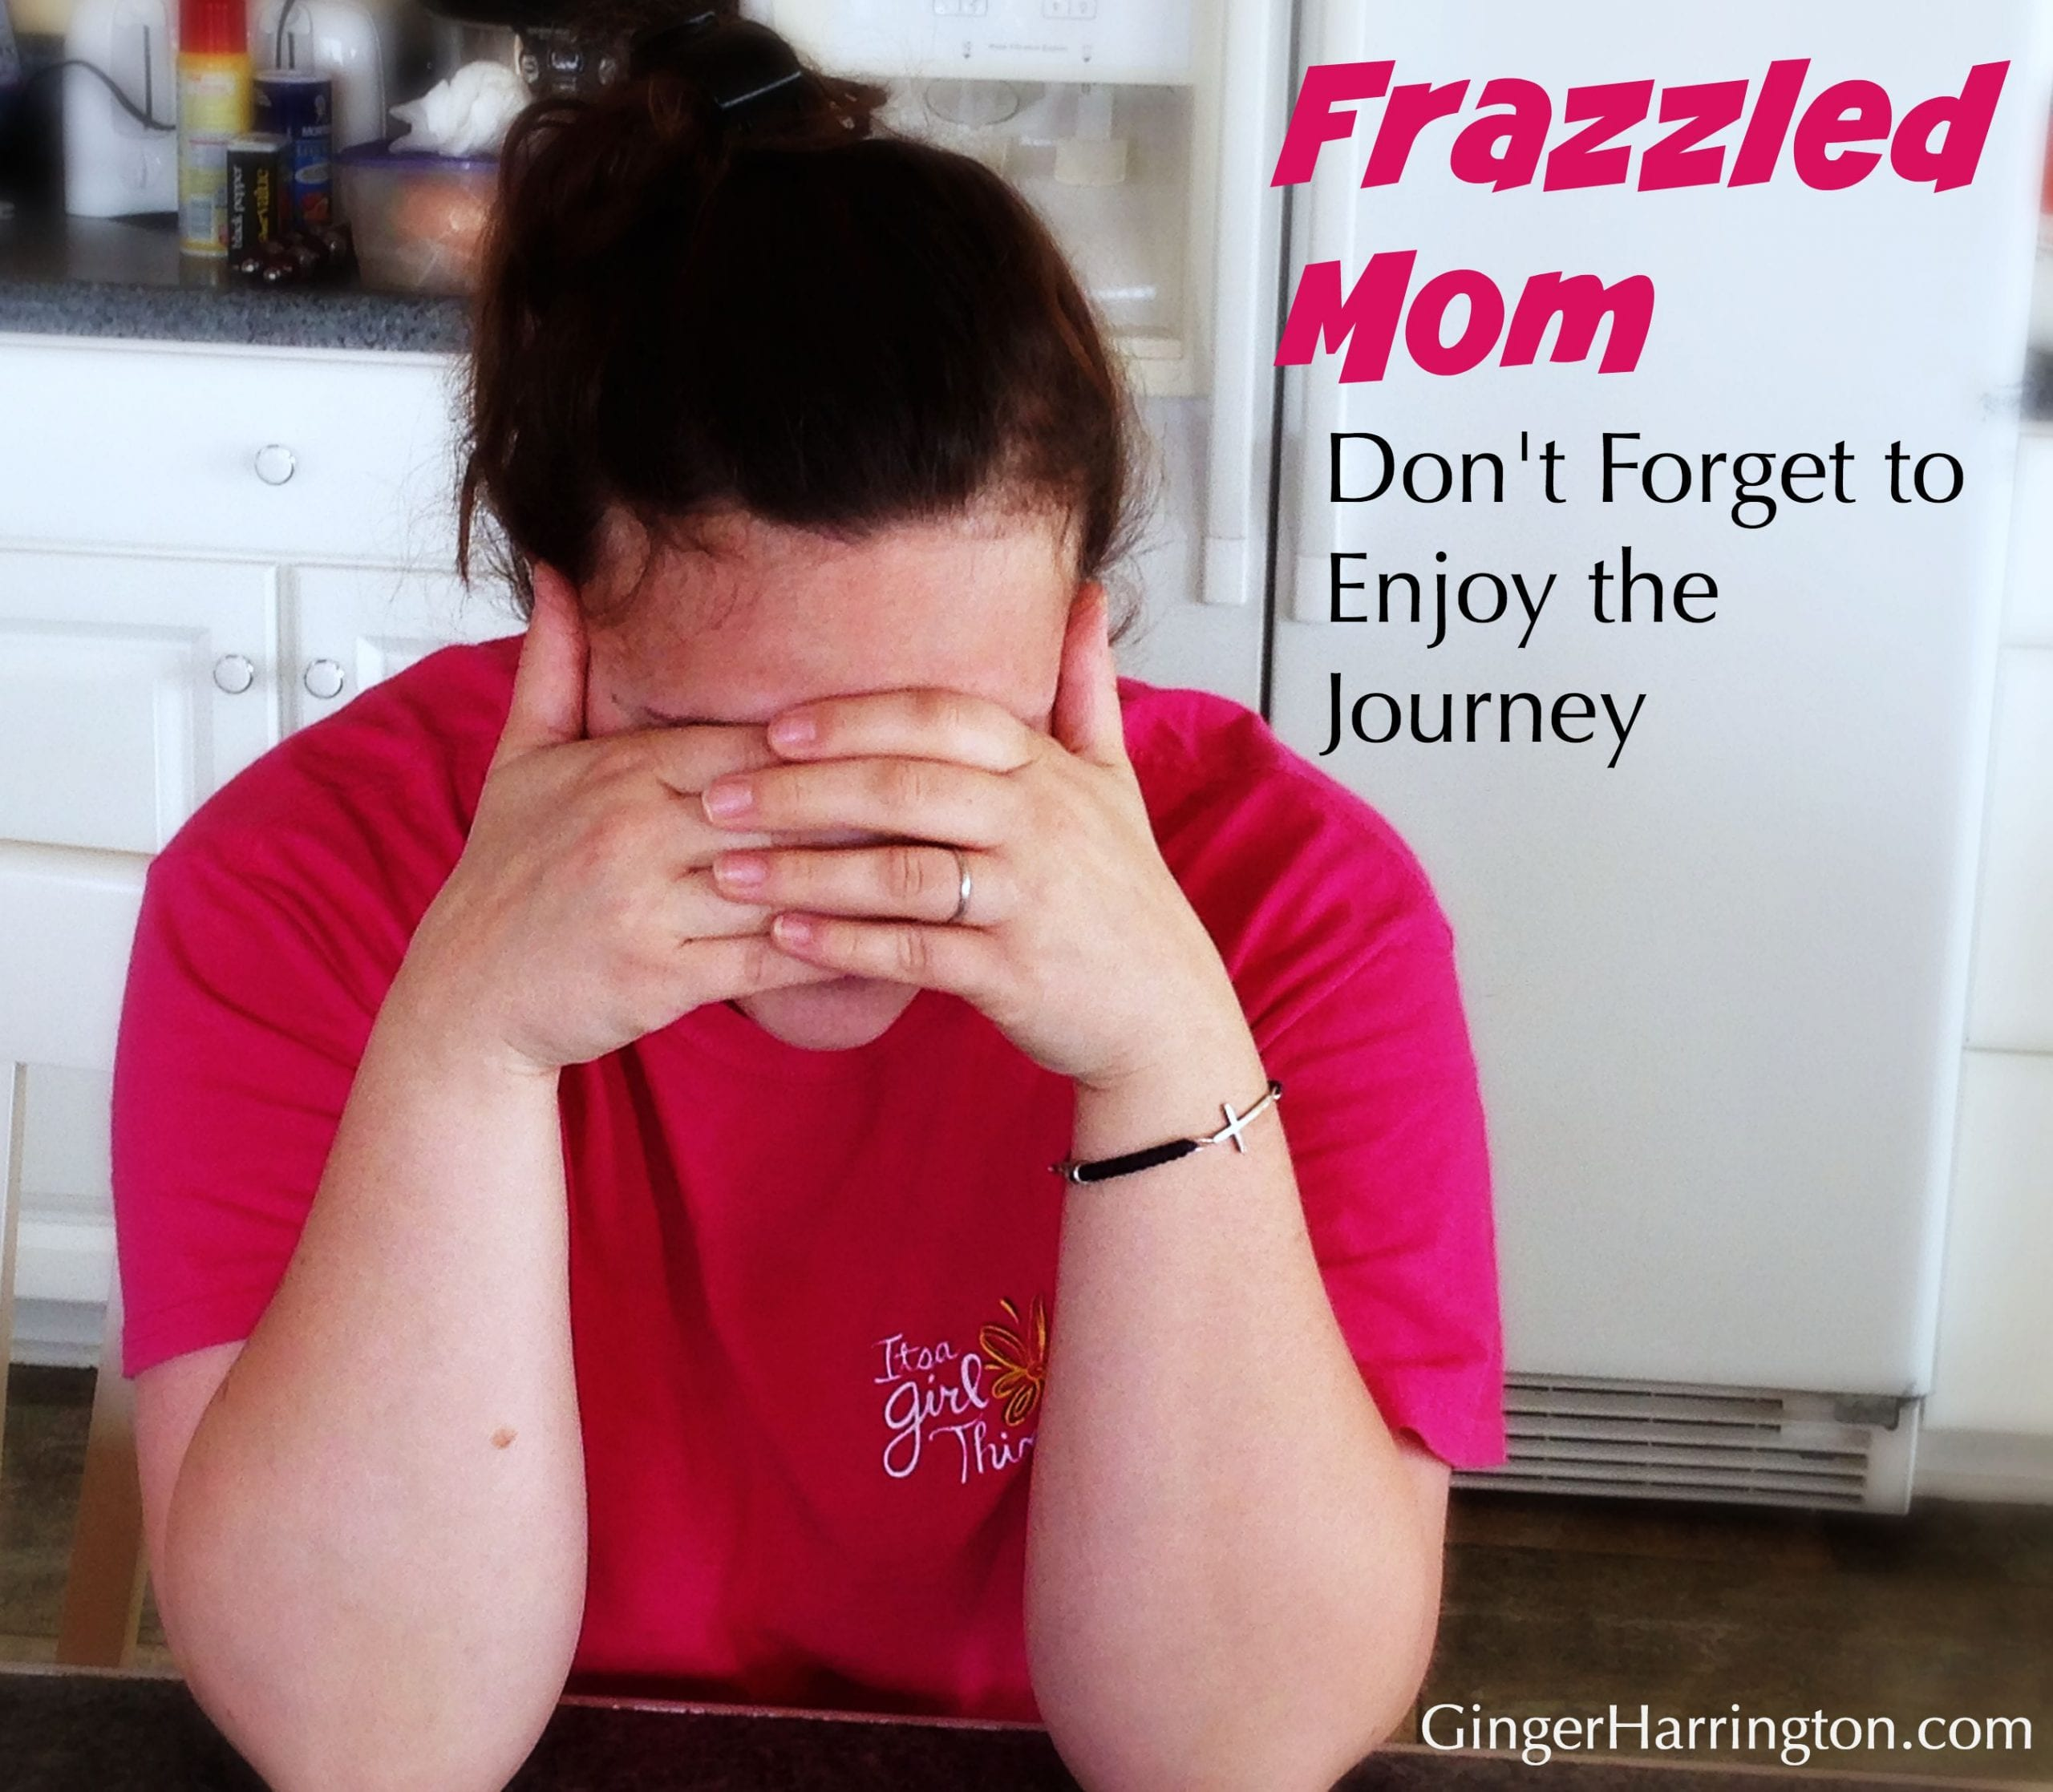 Frazzled Mom, Don't Forget to Enjoy the Journey